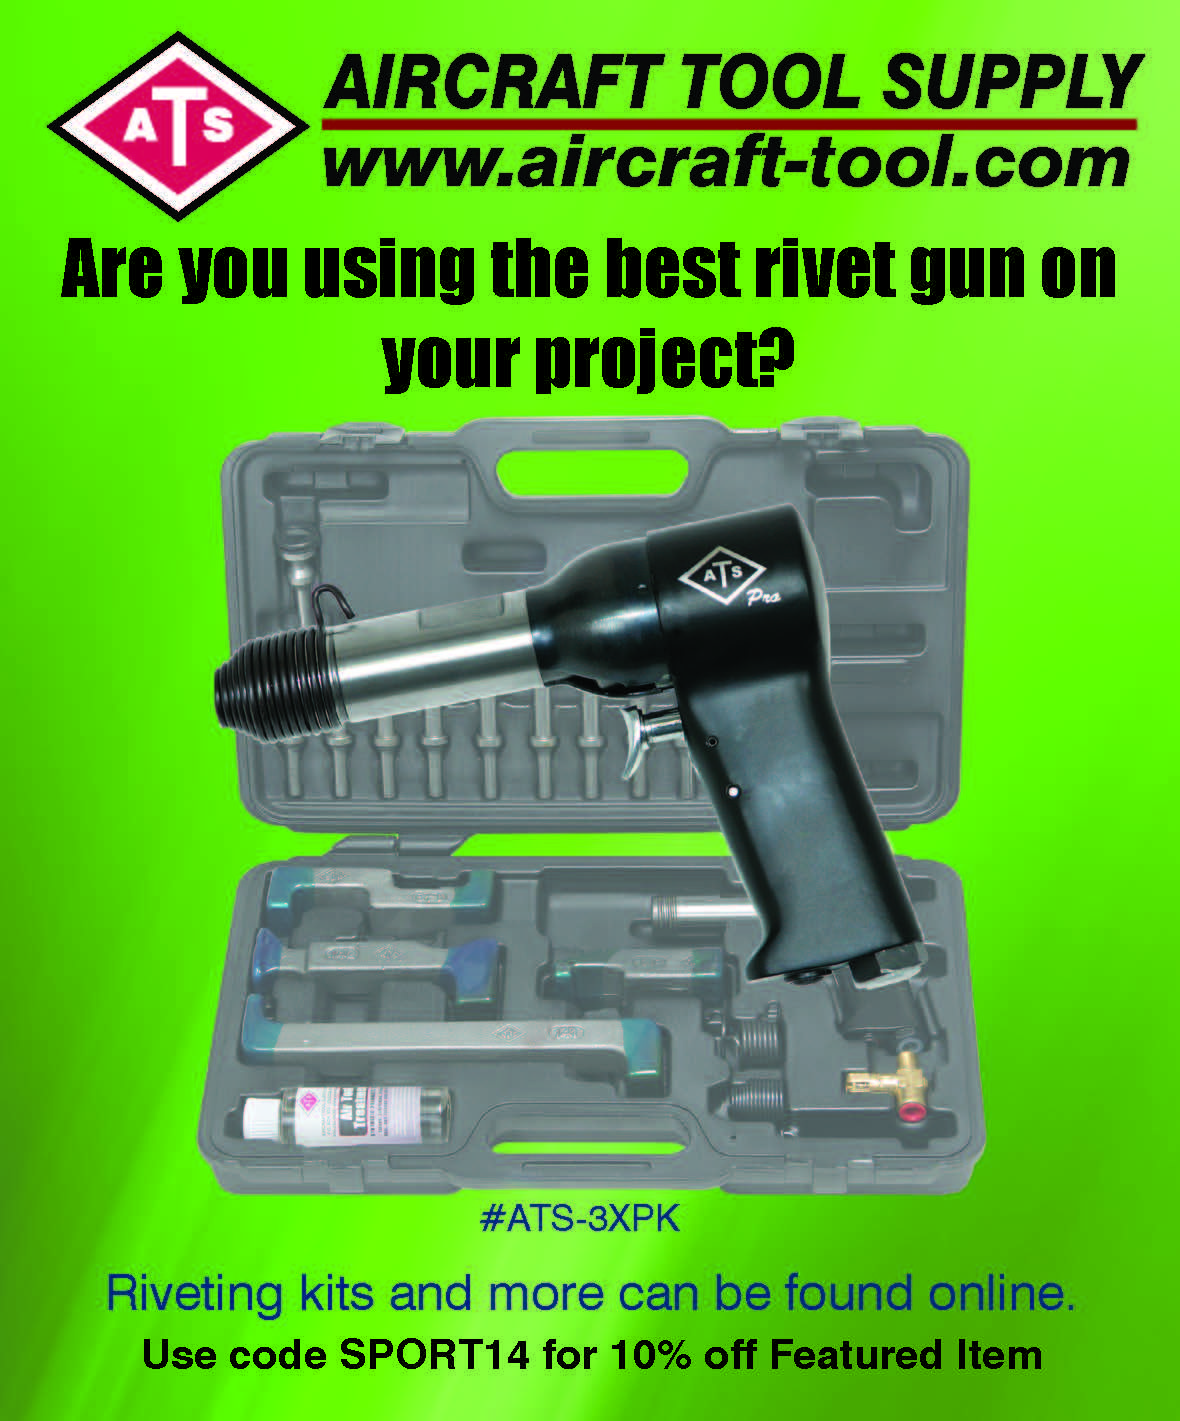 3X Rivet Gun Kit features a 3X Rivet Gun, rivet sets in